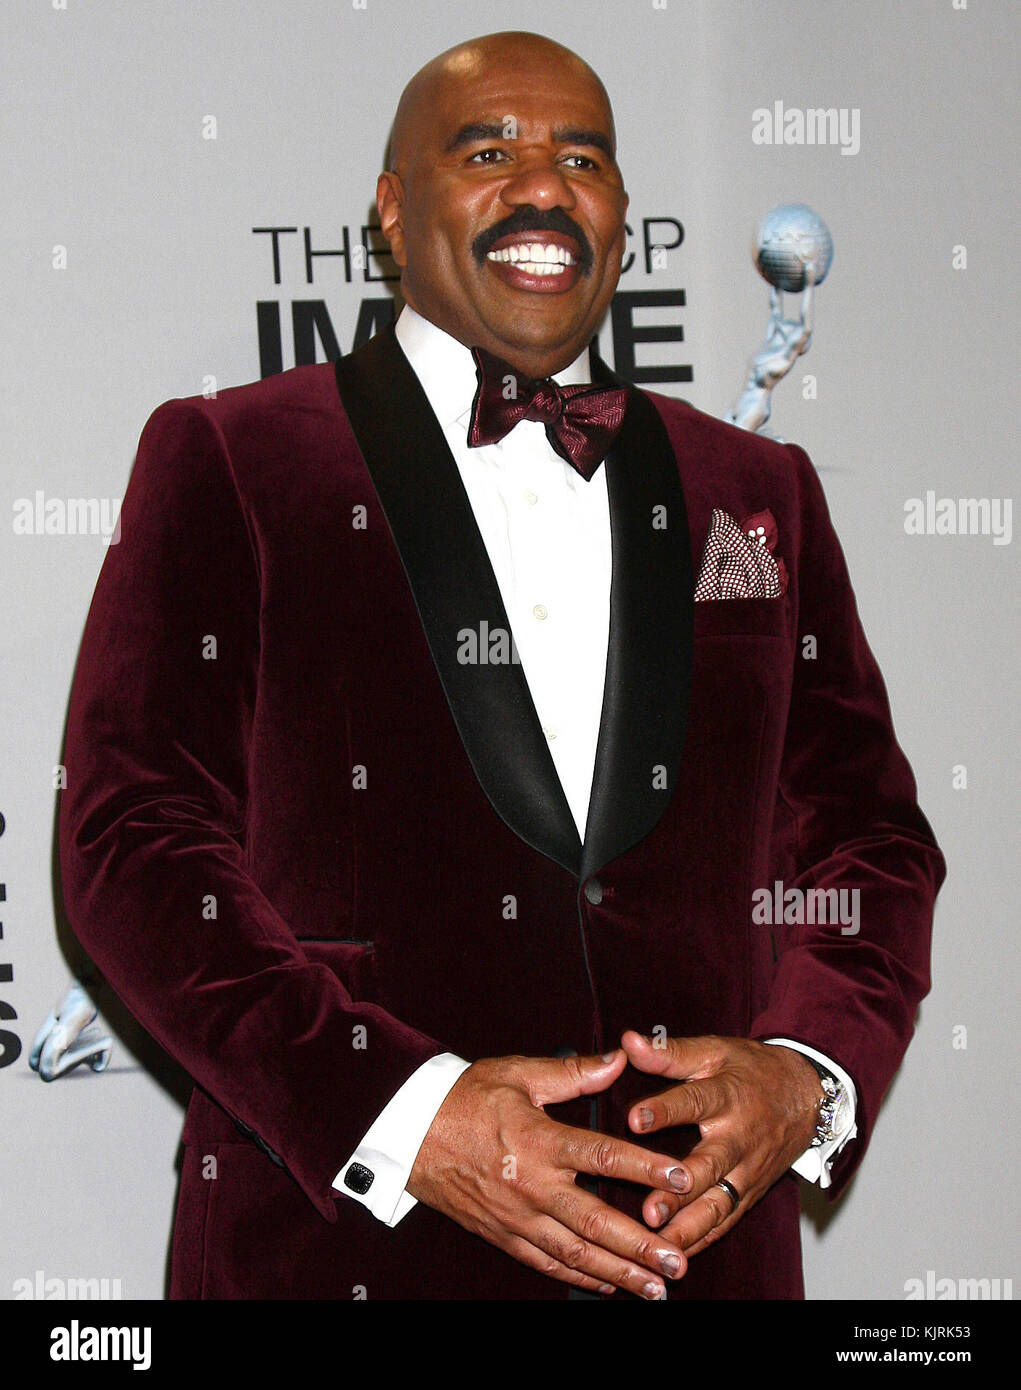 LOS ANGELES, CA - FEBRUARY 01: Steve Harvey poses in the press room at the 44th NAACP Image Awards at the Shrine Stock Photo